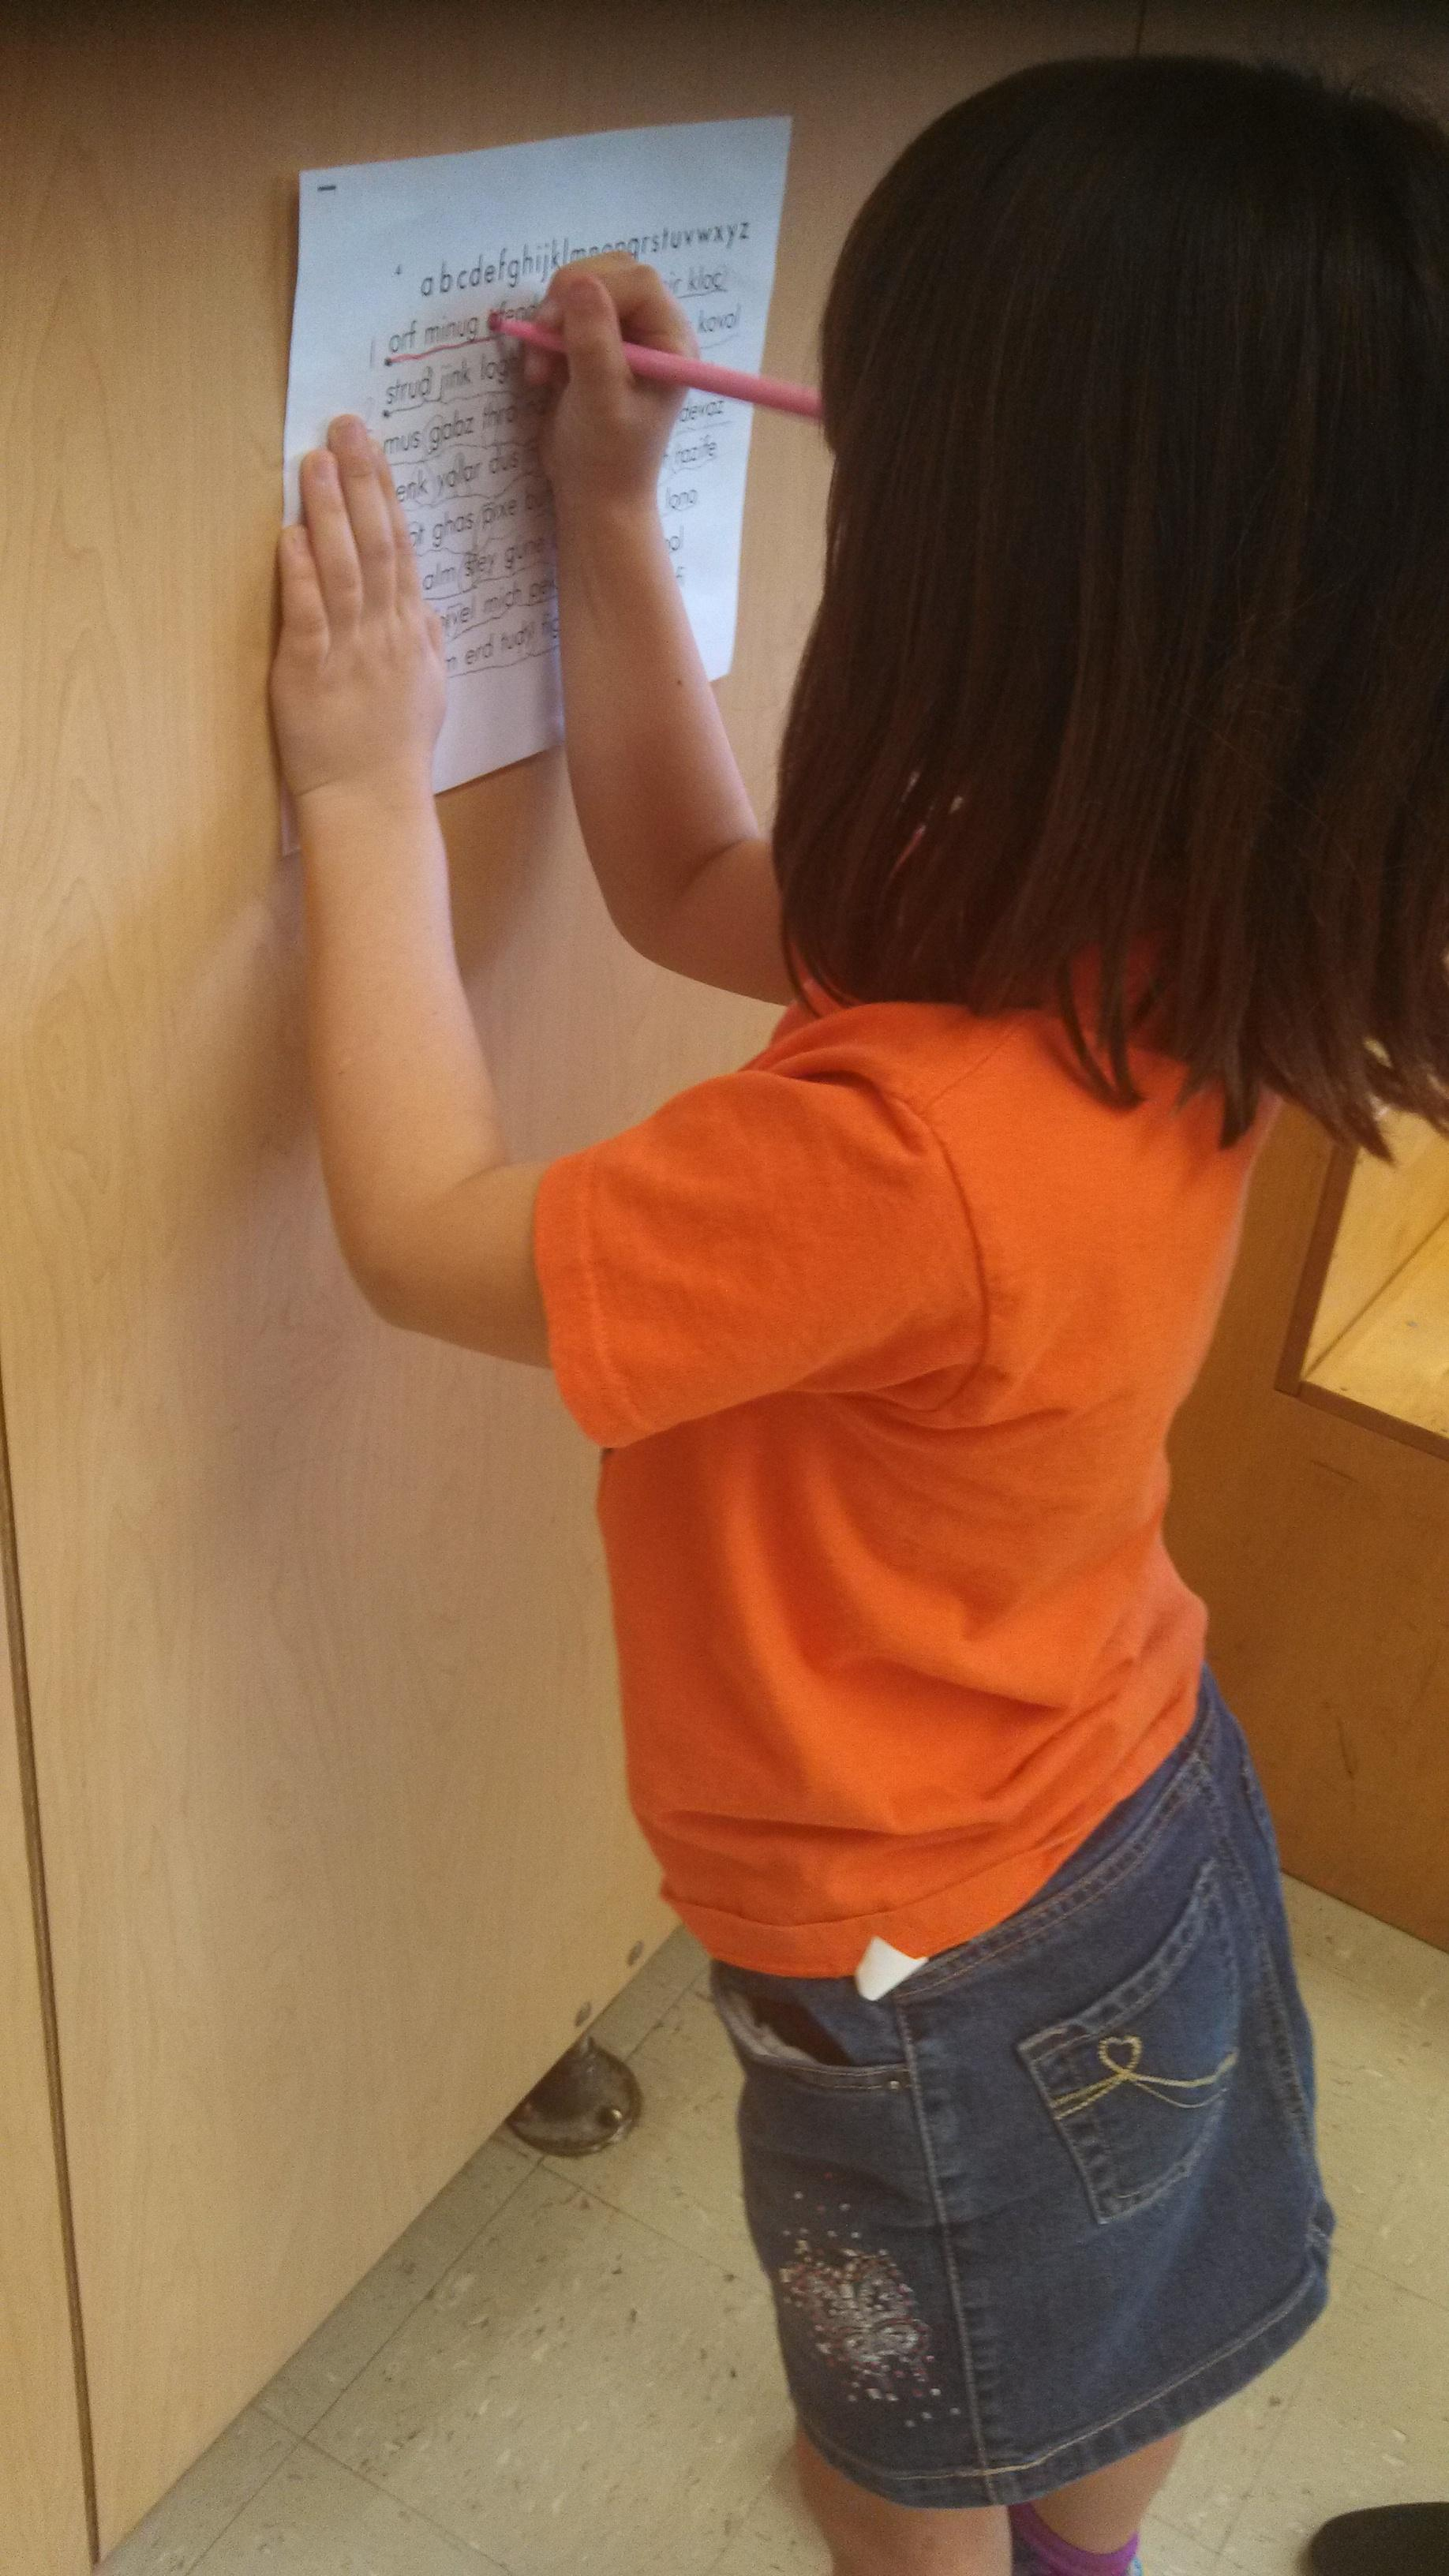 Writing on a vertical surface is good for upper body, posture and for correct wrist placement.